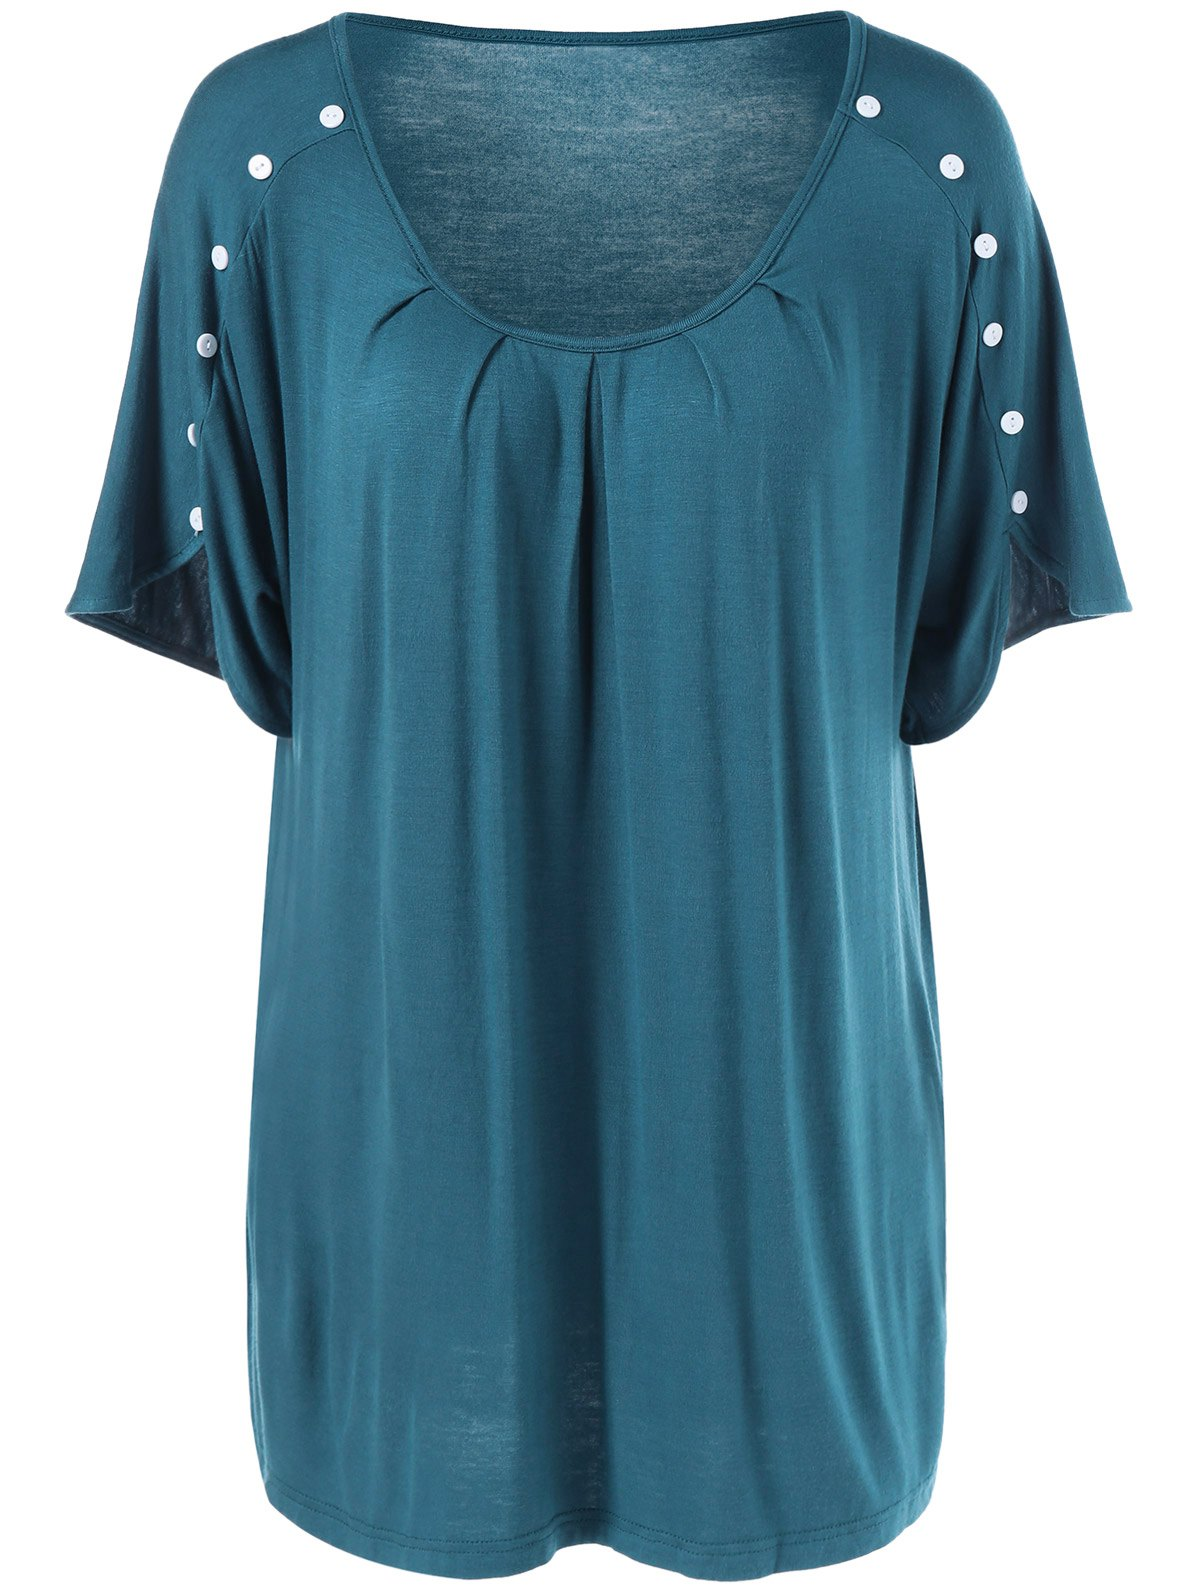 Plus Size Button Detailed Wrinkle T-Shirt - BLUE GREEN XL